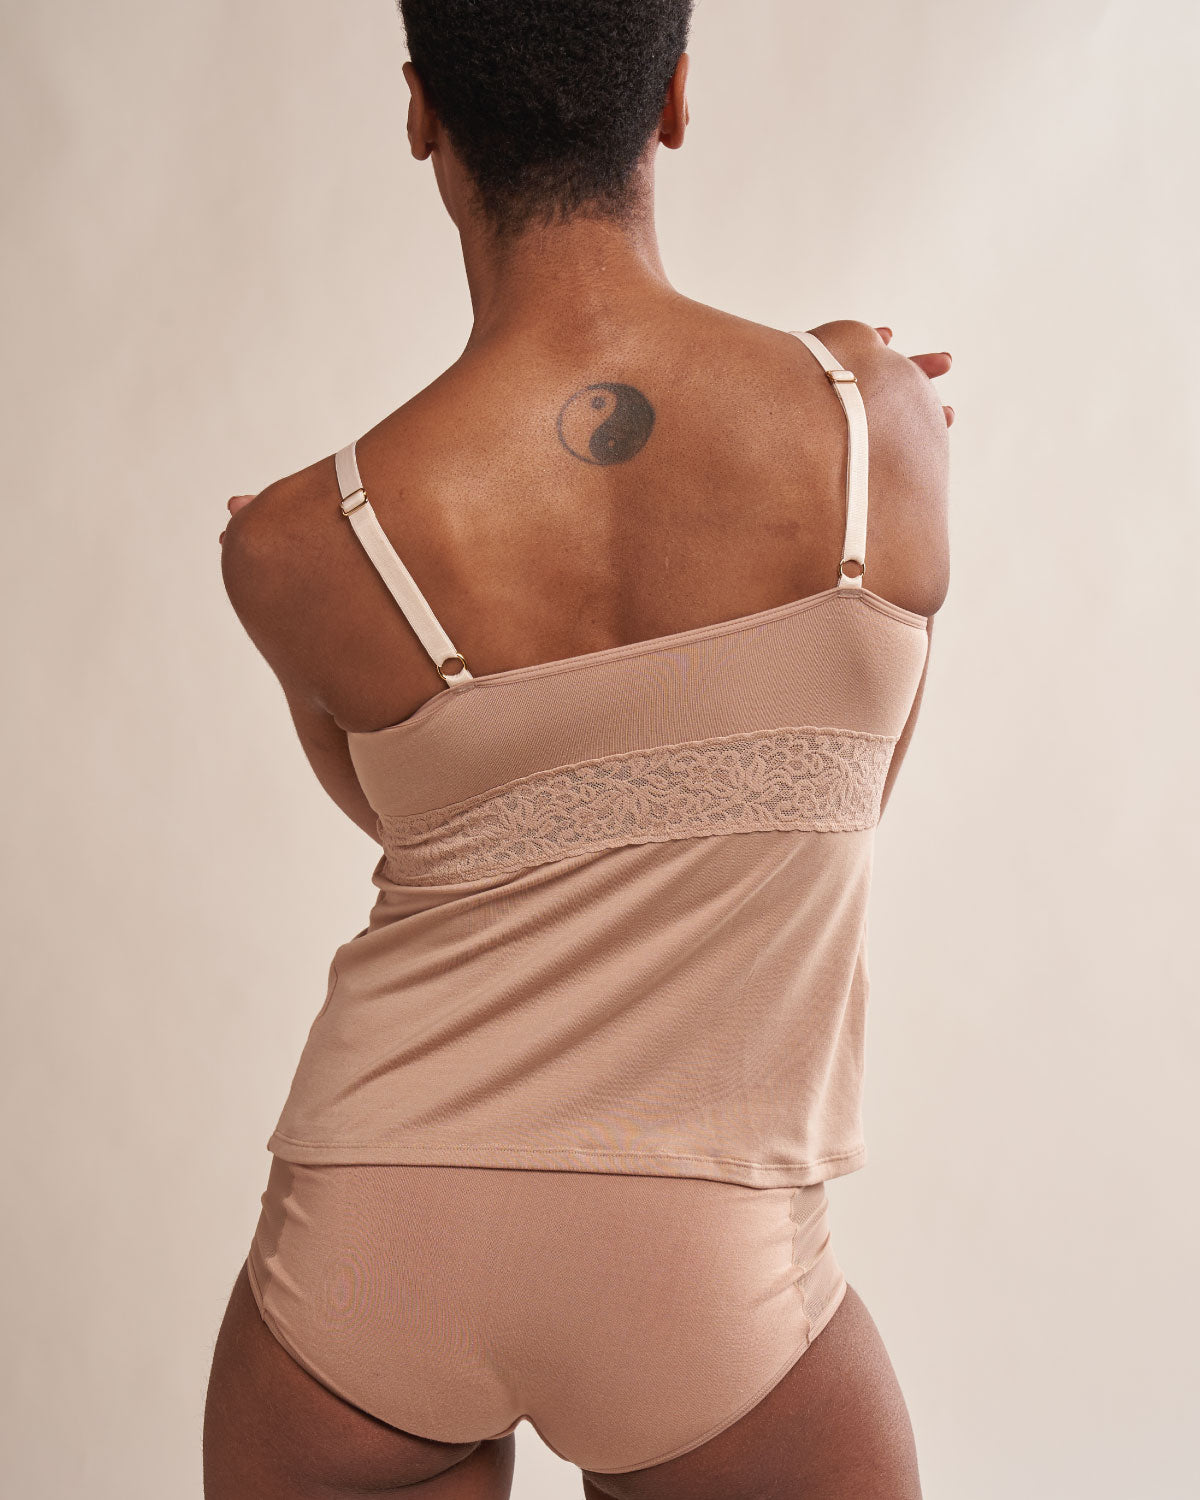 Sand, pocketed camisole with wireless cups, wrap front design, lace v neck and adjustable straps.